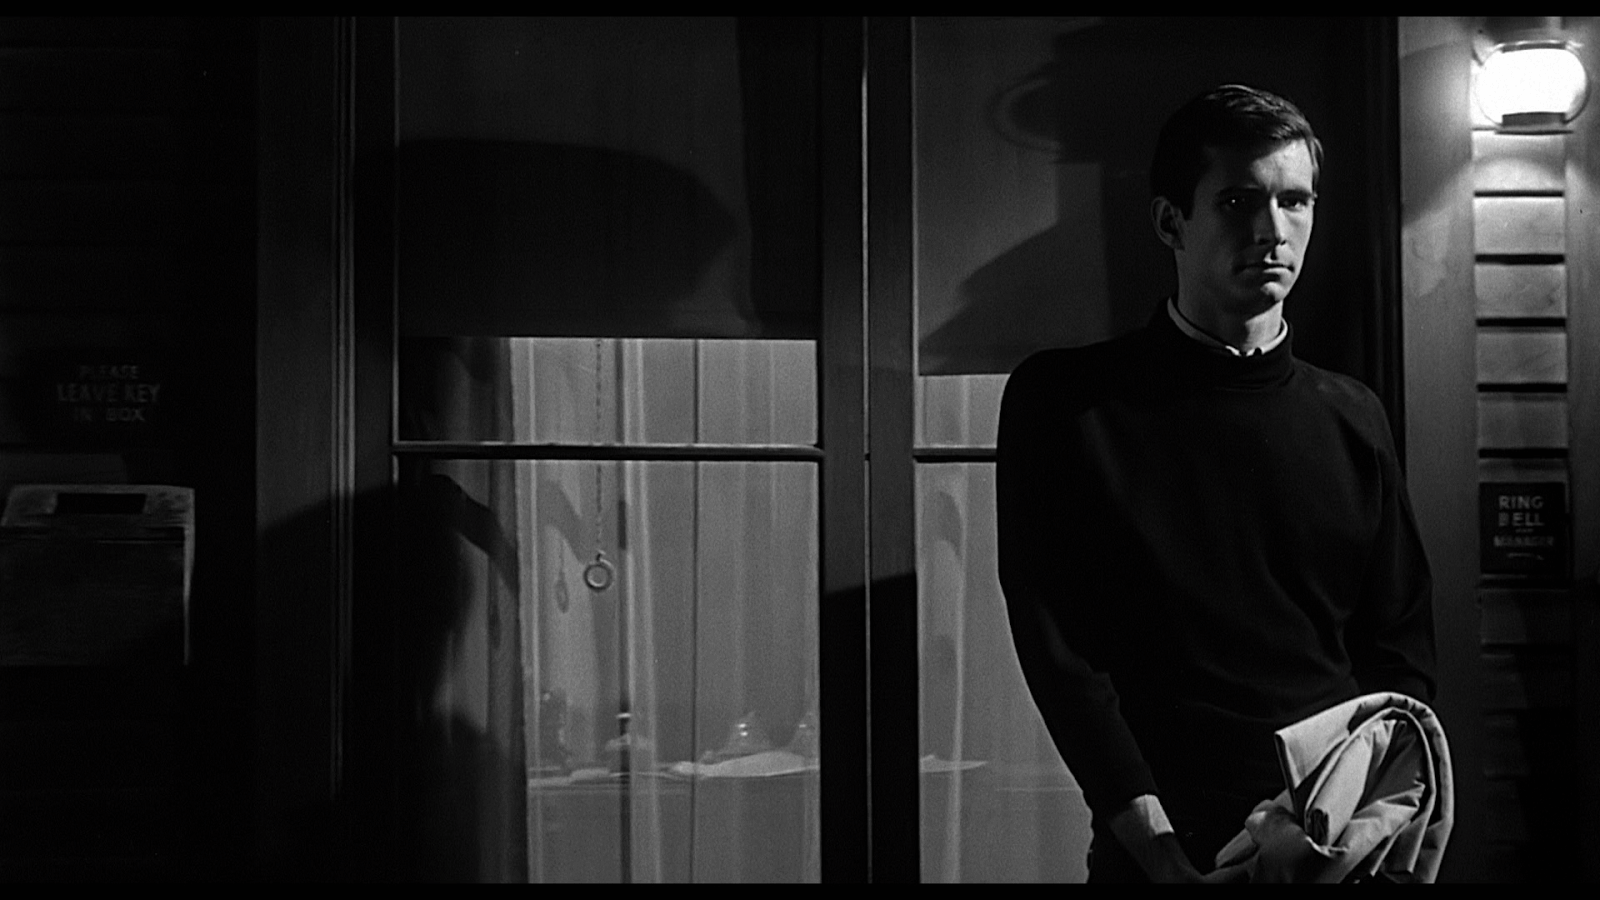 movies psycho alfred hitchcock movie legends anthony perkins HD 1600x900